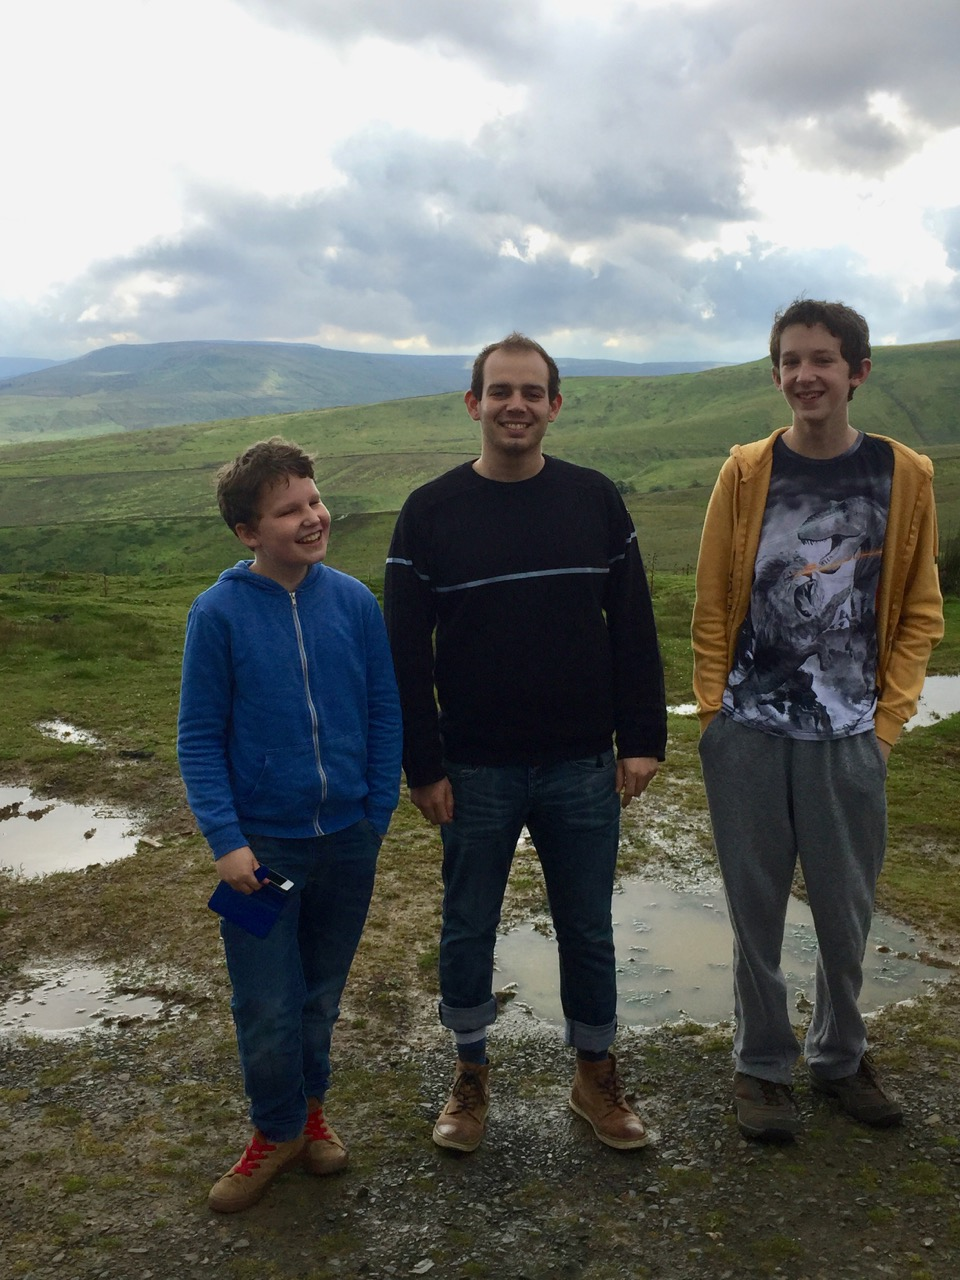 My three sons - (now not so little by any means…)